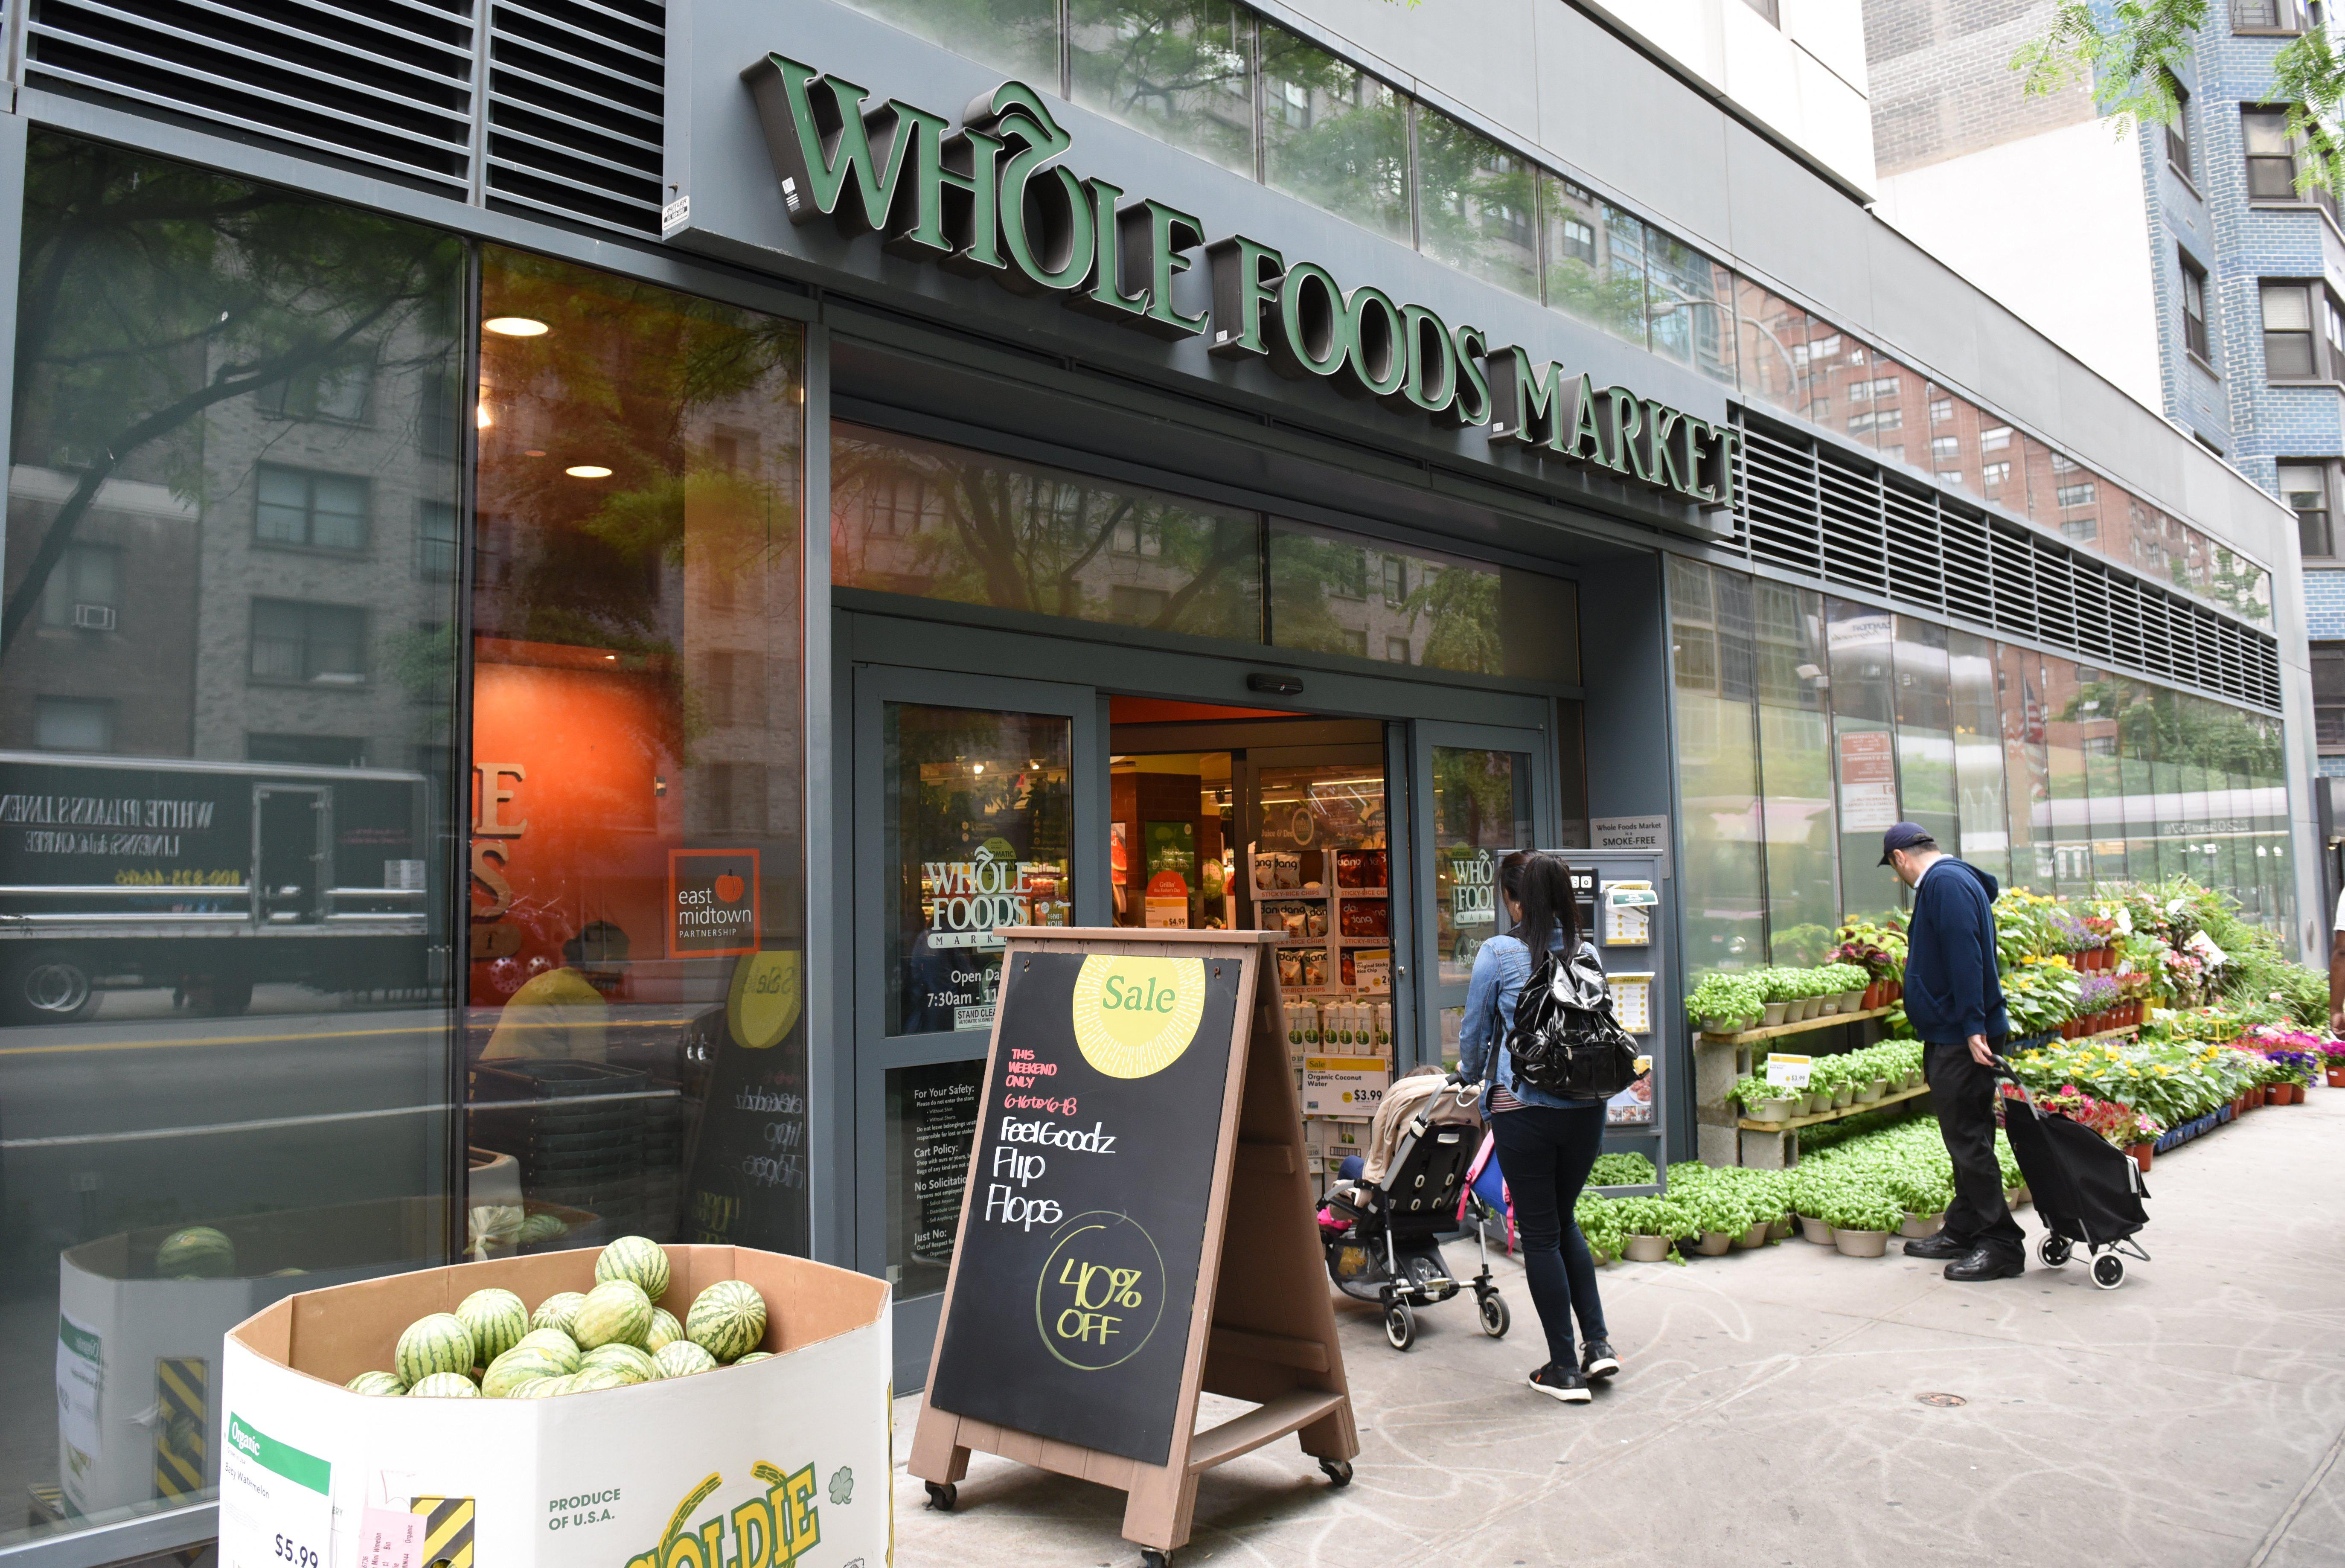 The exterior of the Whole Foods Market in Midtown New York City on June 16, 2017.